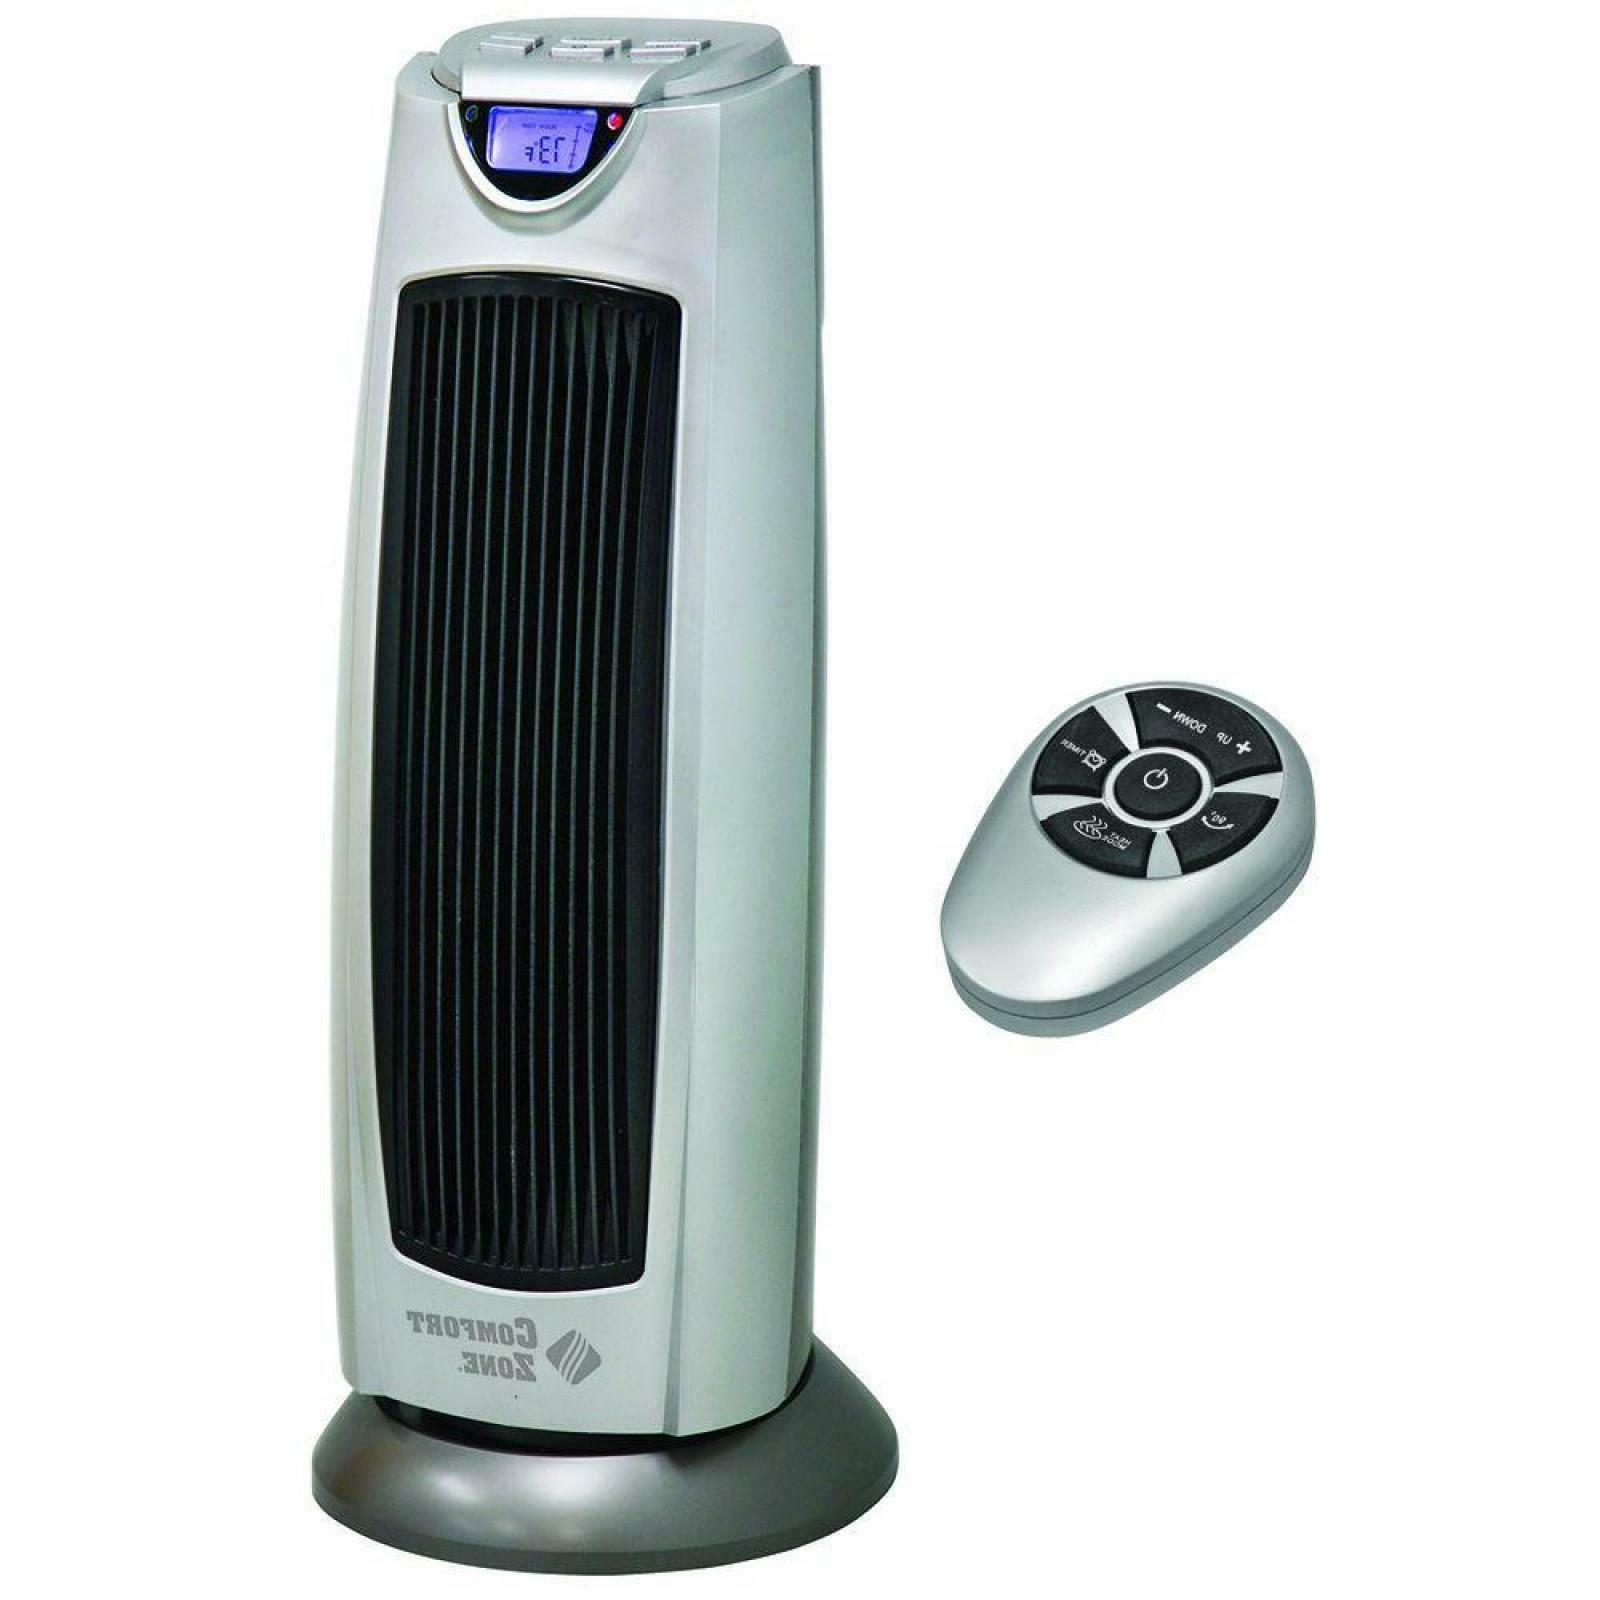 Comfort Zone Digital Ceramic Oscillating Electric Tower Heat